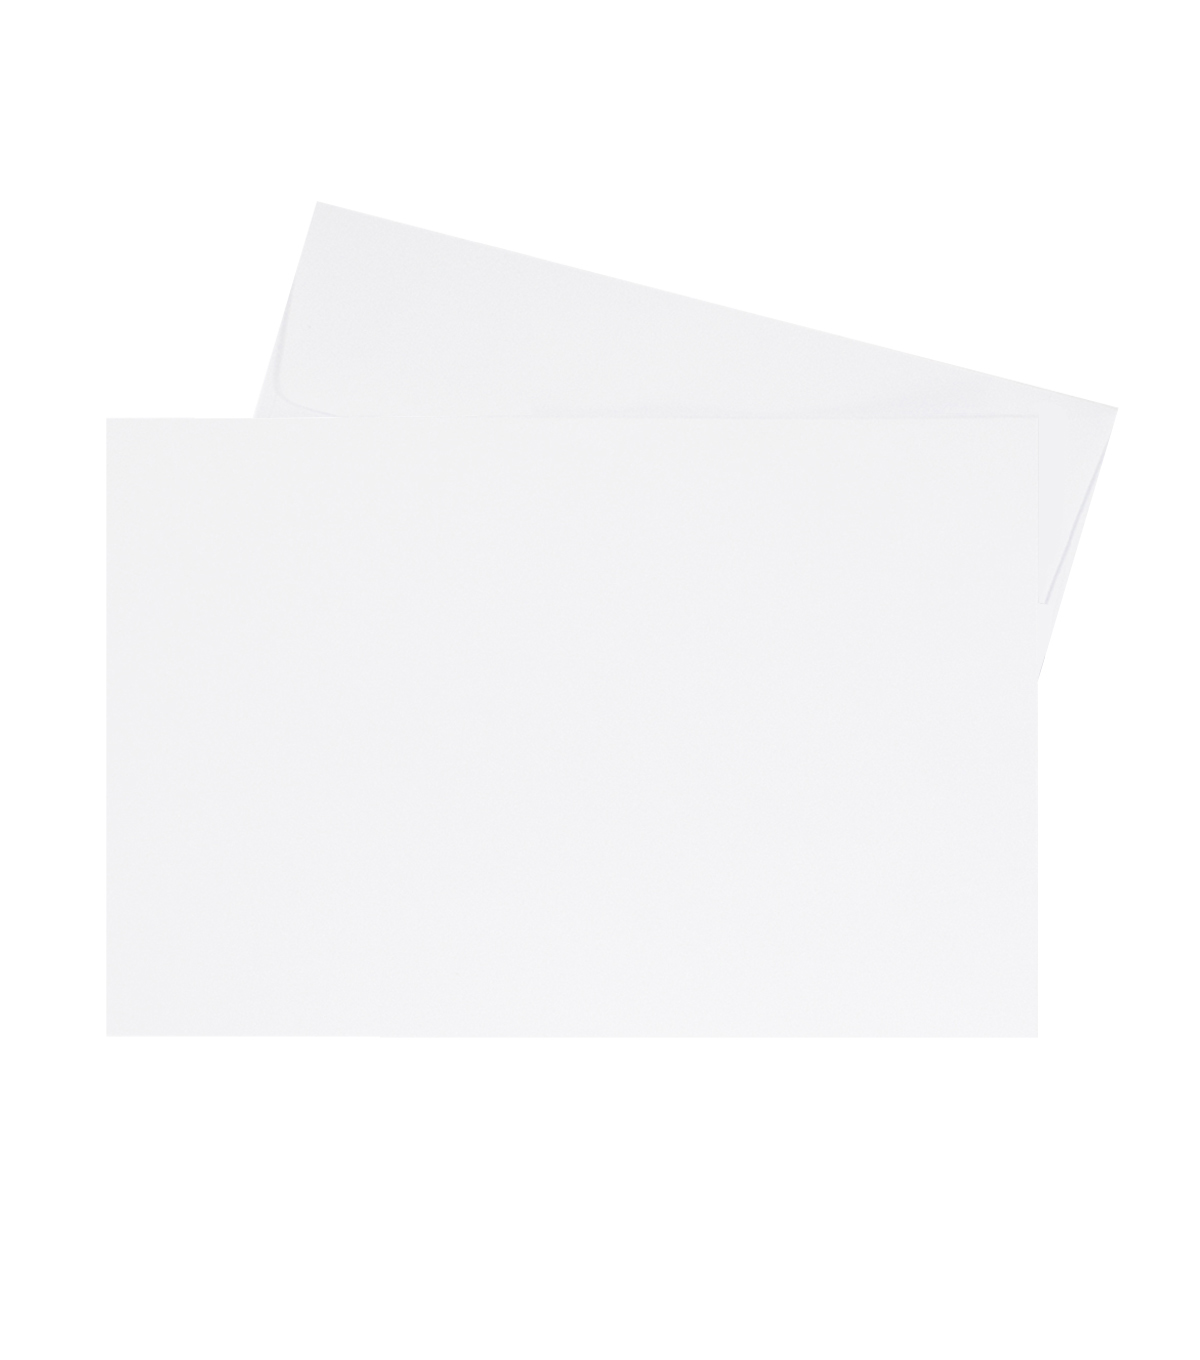 Park Lane A9 Envelopes-White